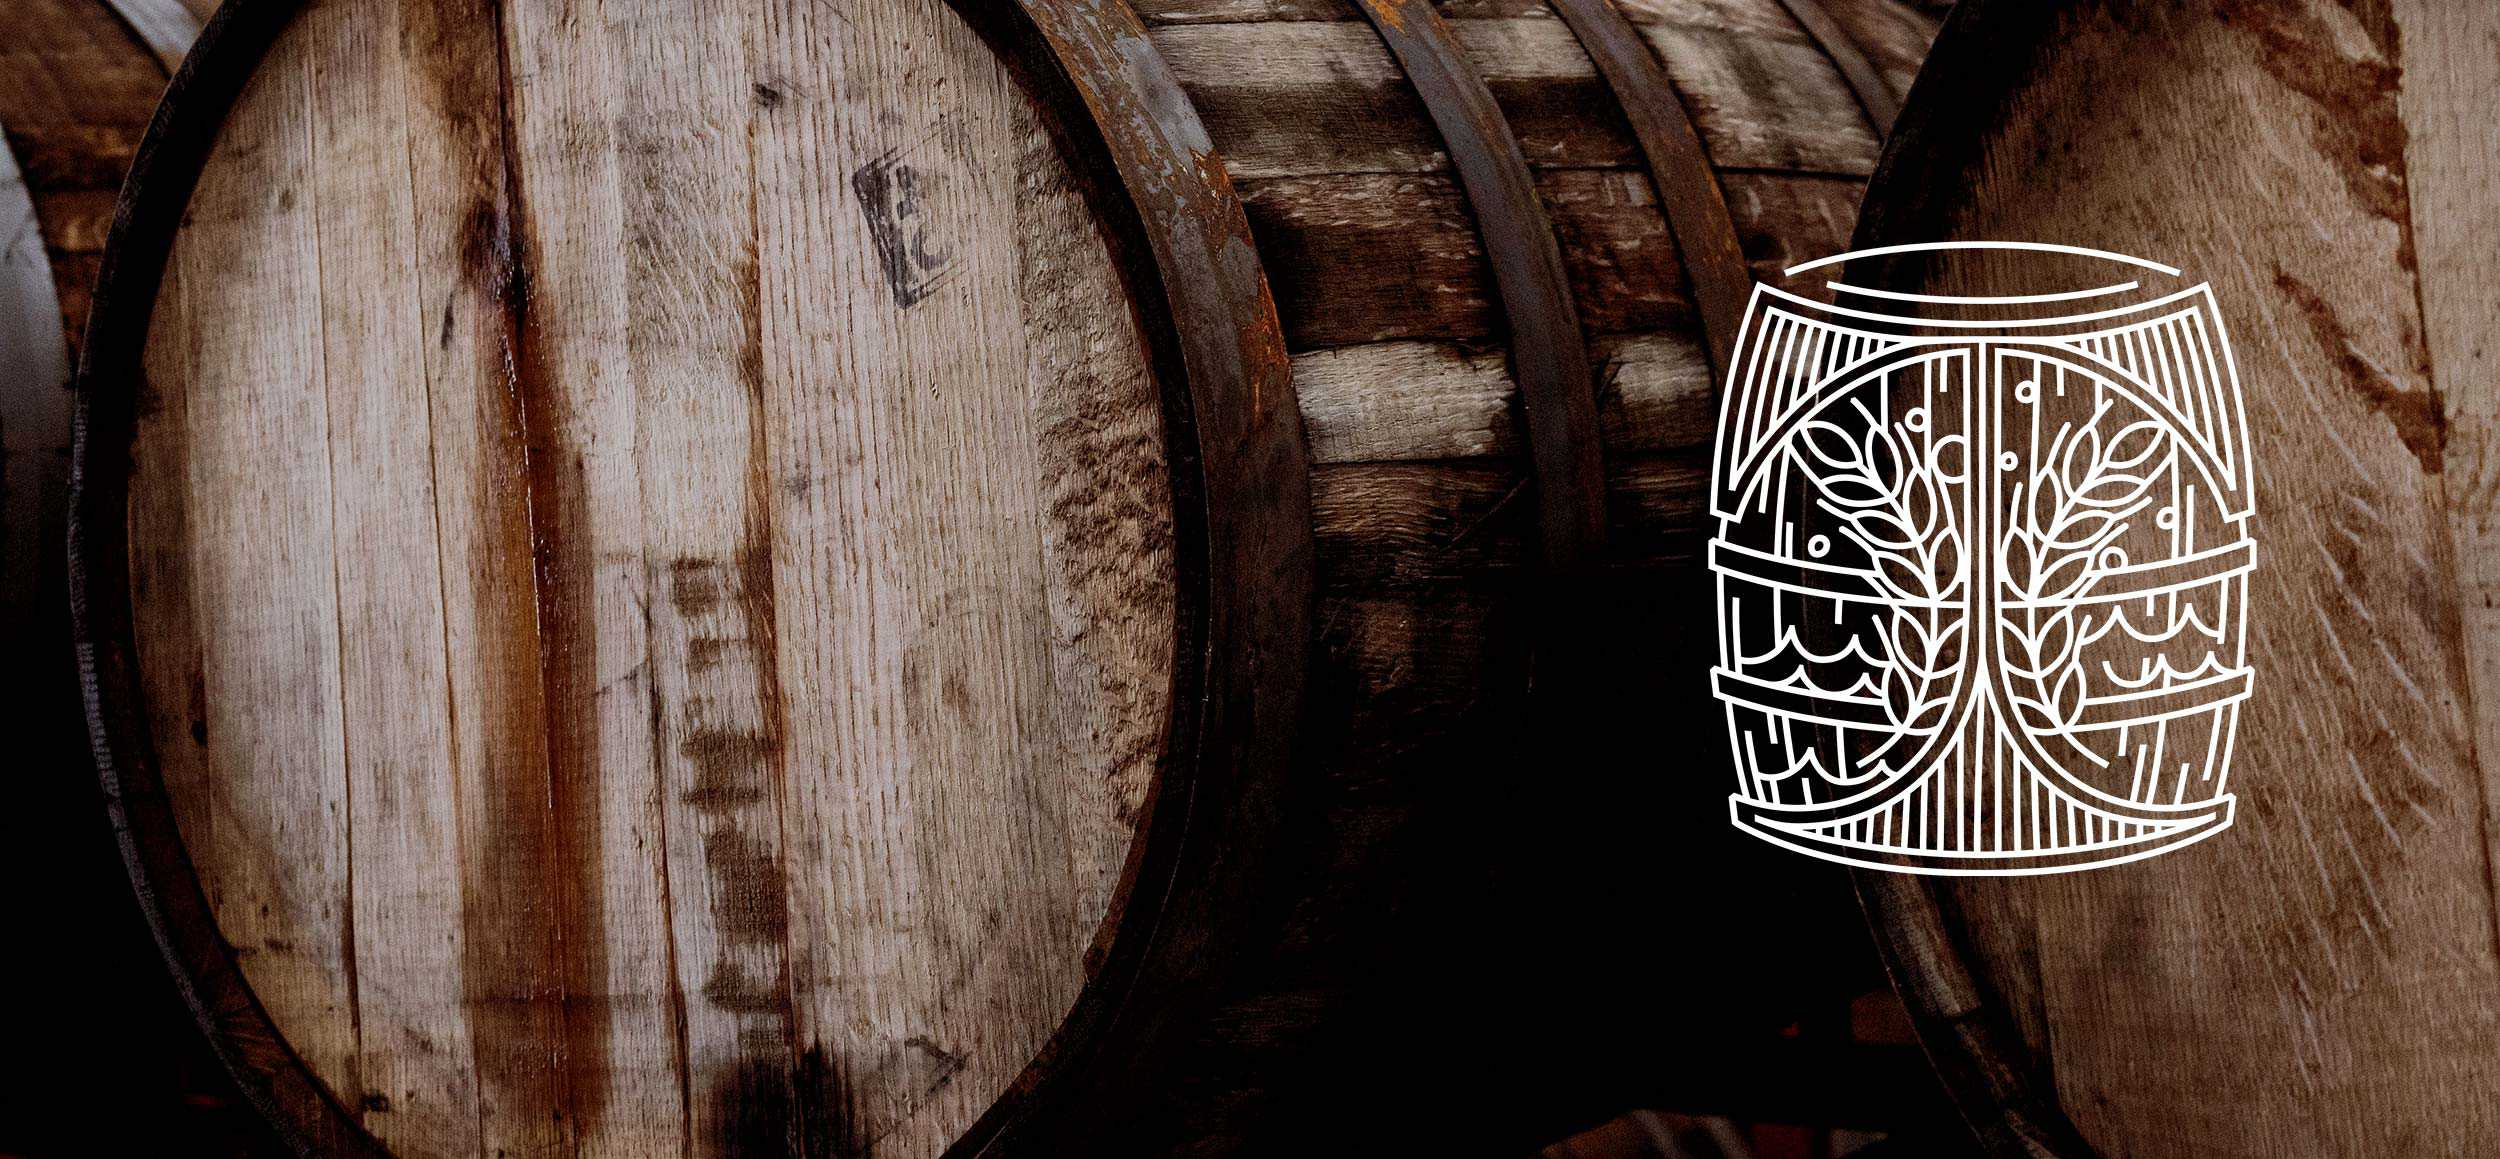 Truant Brewing to launch with brand strategy and VI, inspired by storytelling